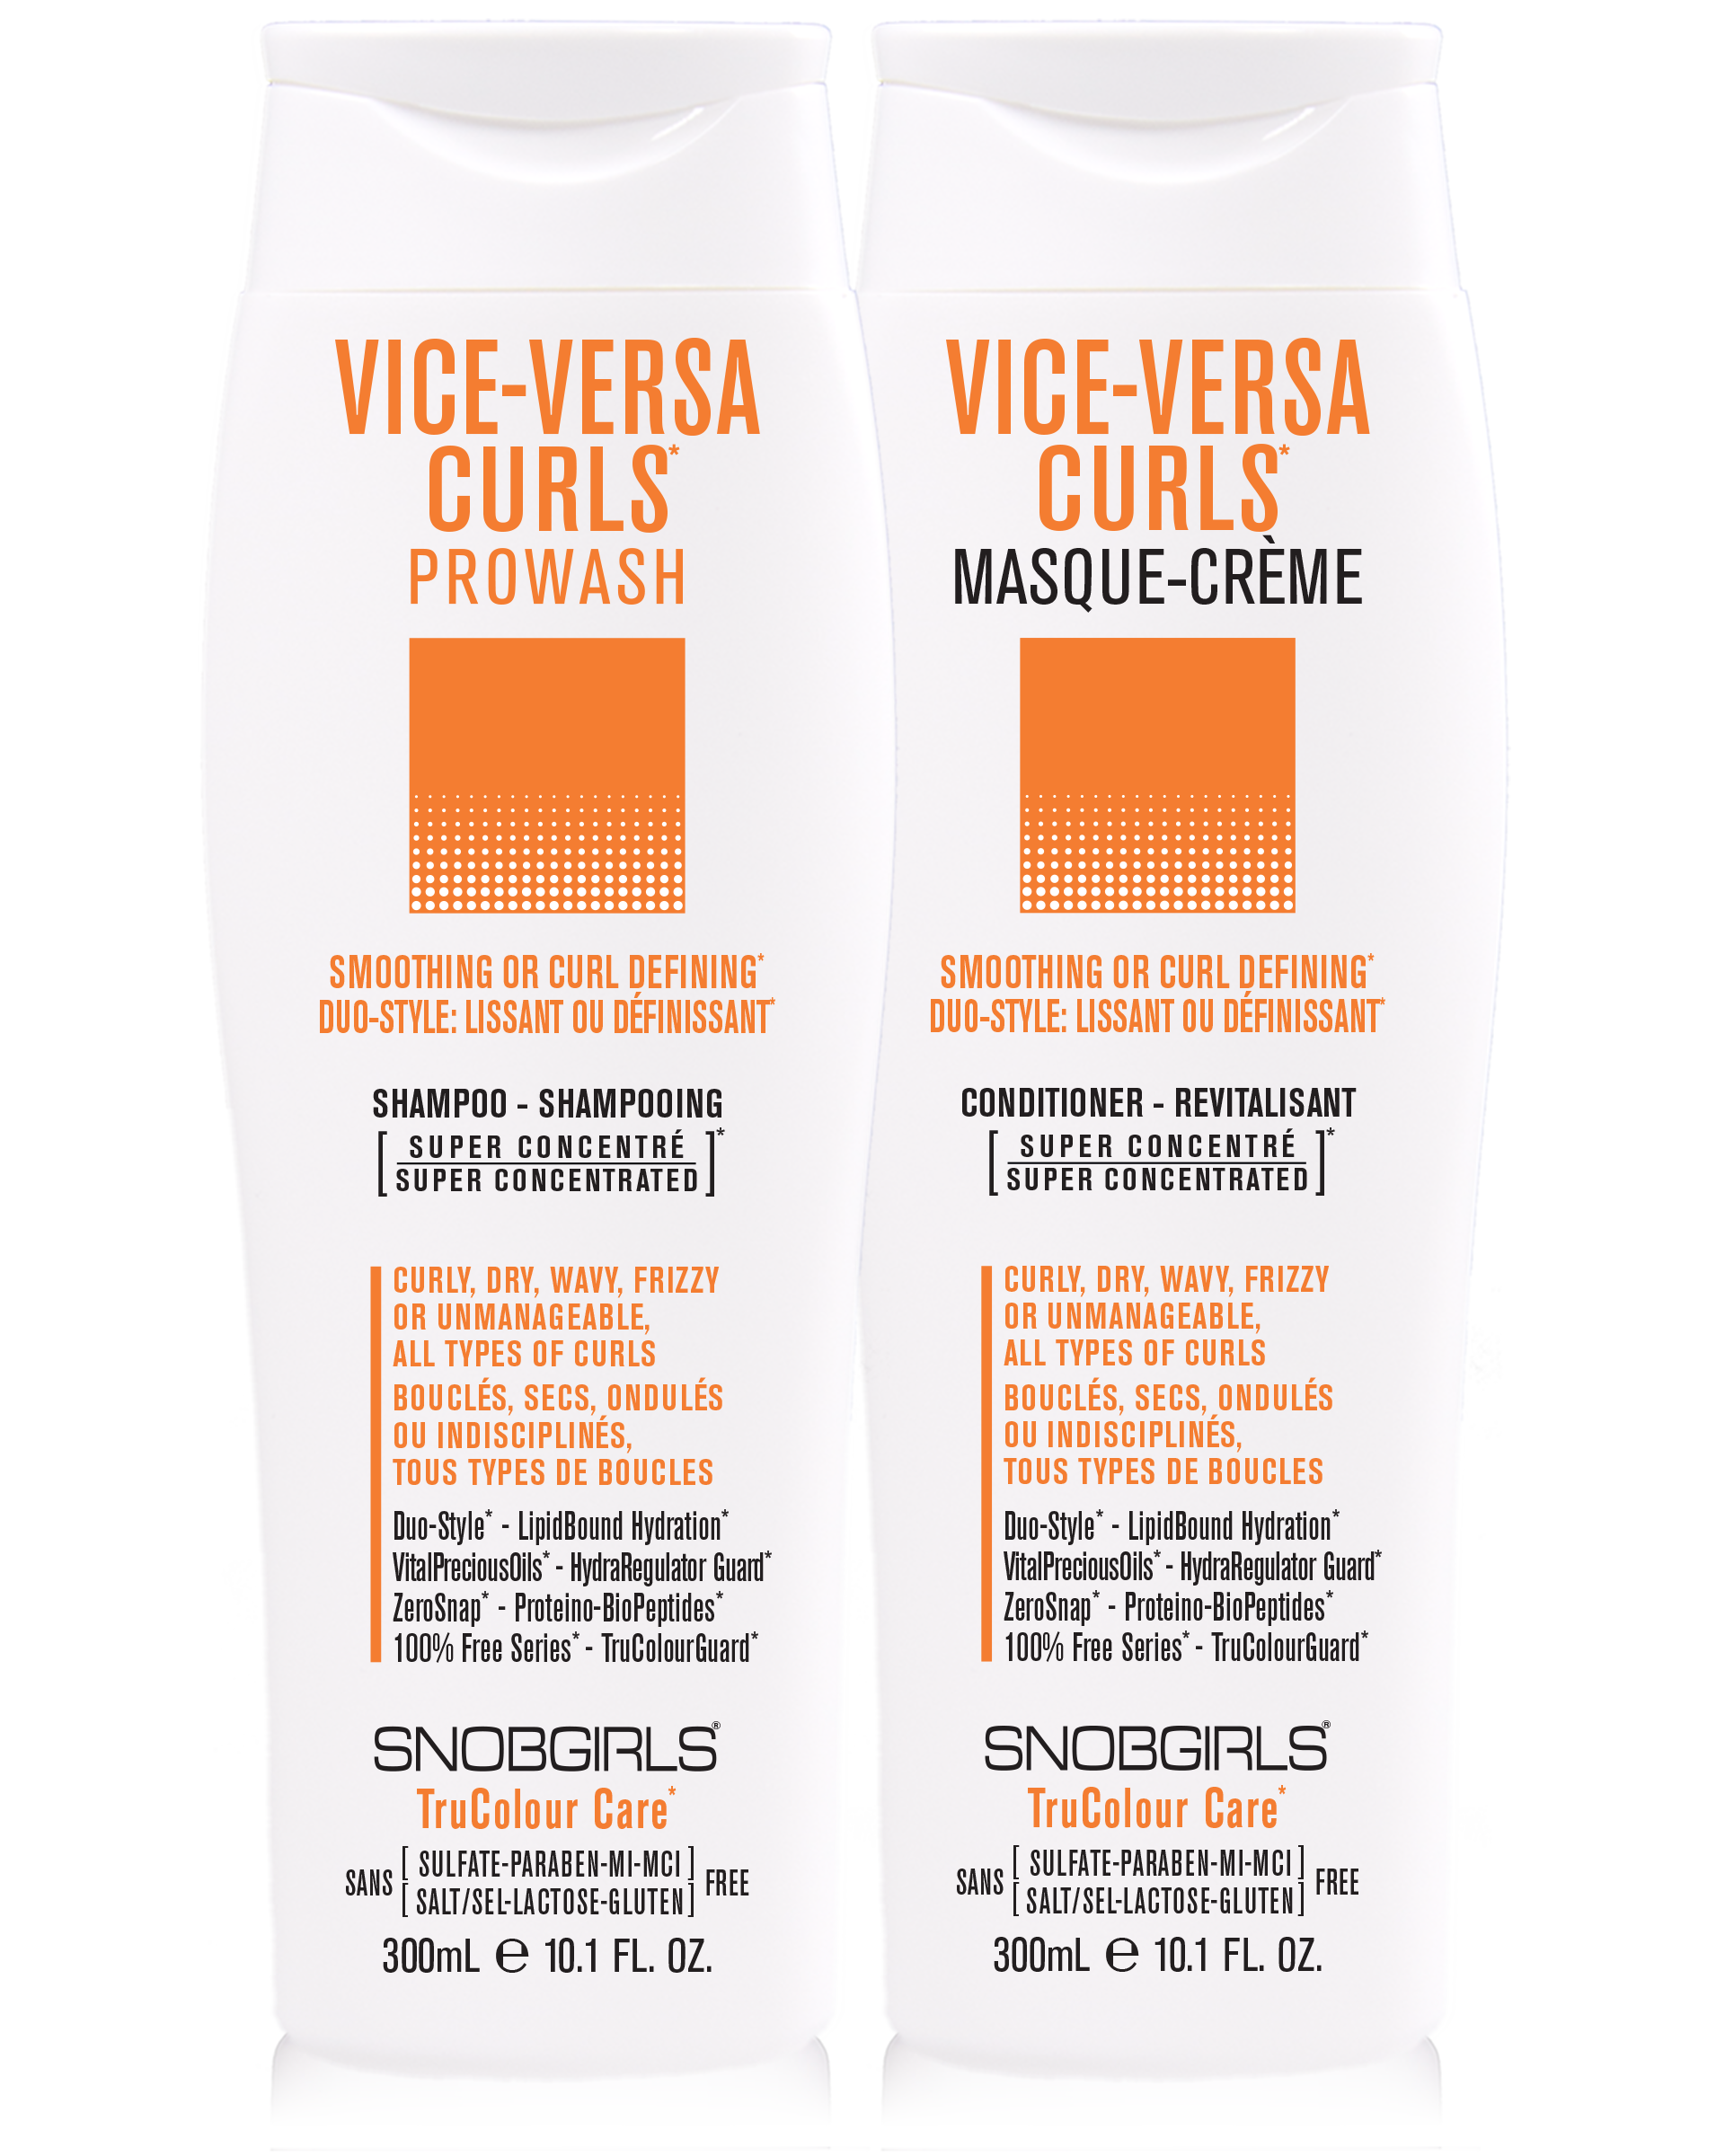 DUO VICE-VERSA CURLS Prowash + Masque-Creme 300 mL - SNOBGIRLS.com